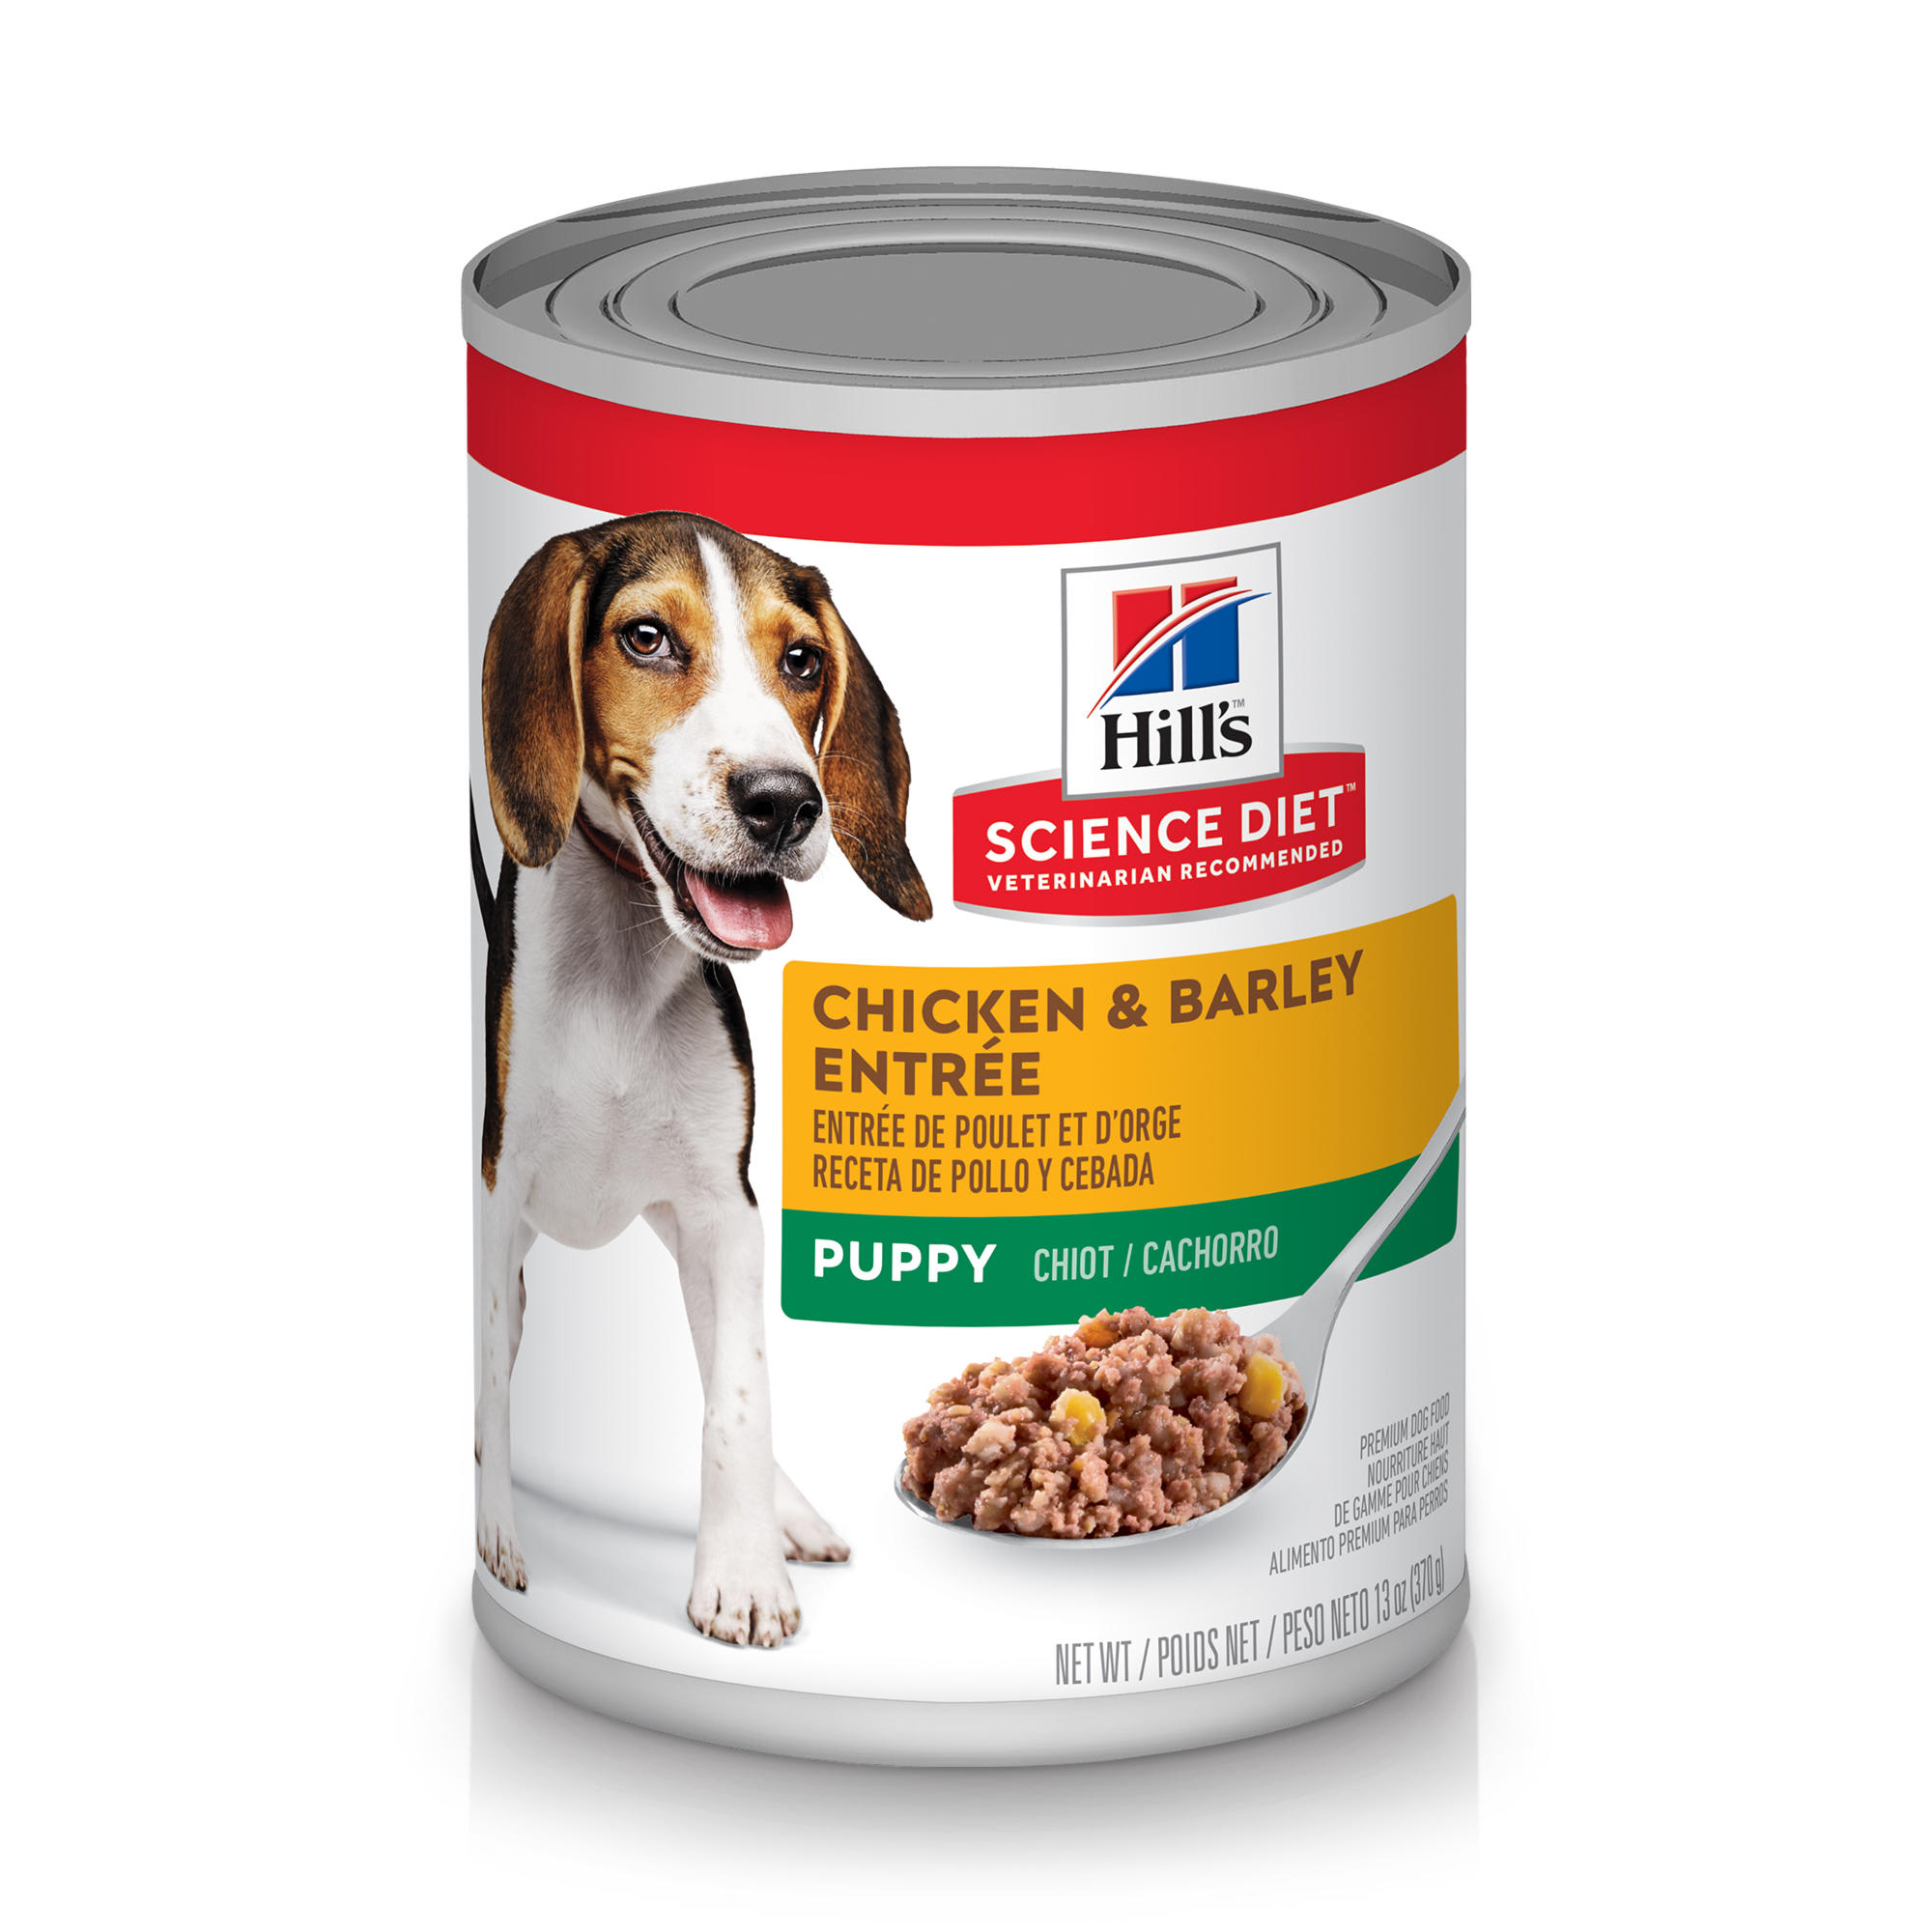 Hill's Science Diet Puppy Chicken & Barley Entree Canned Dog Food -  P5024333